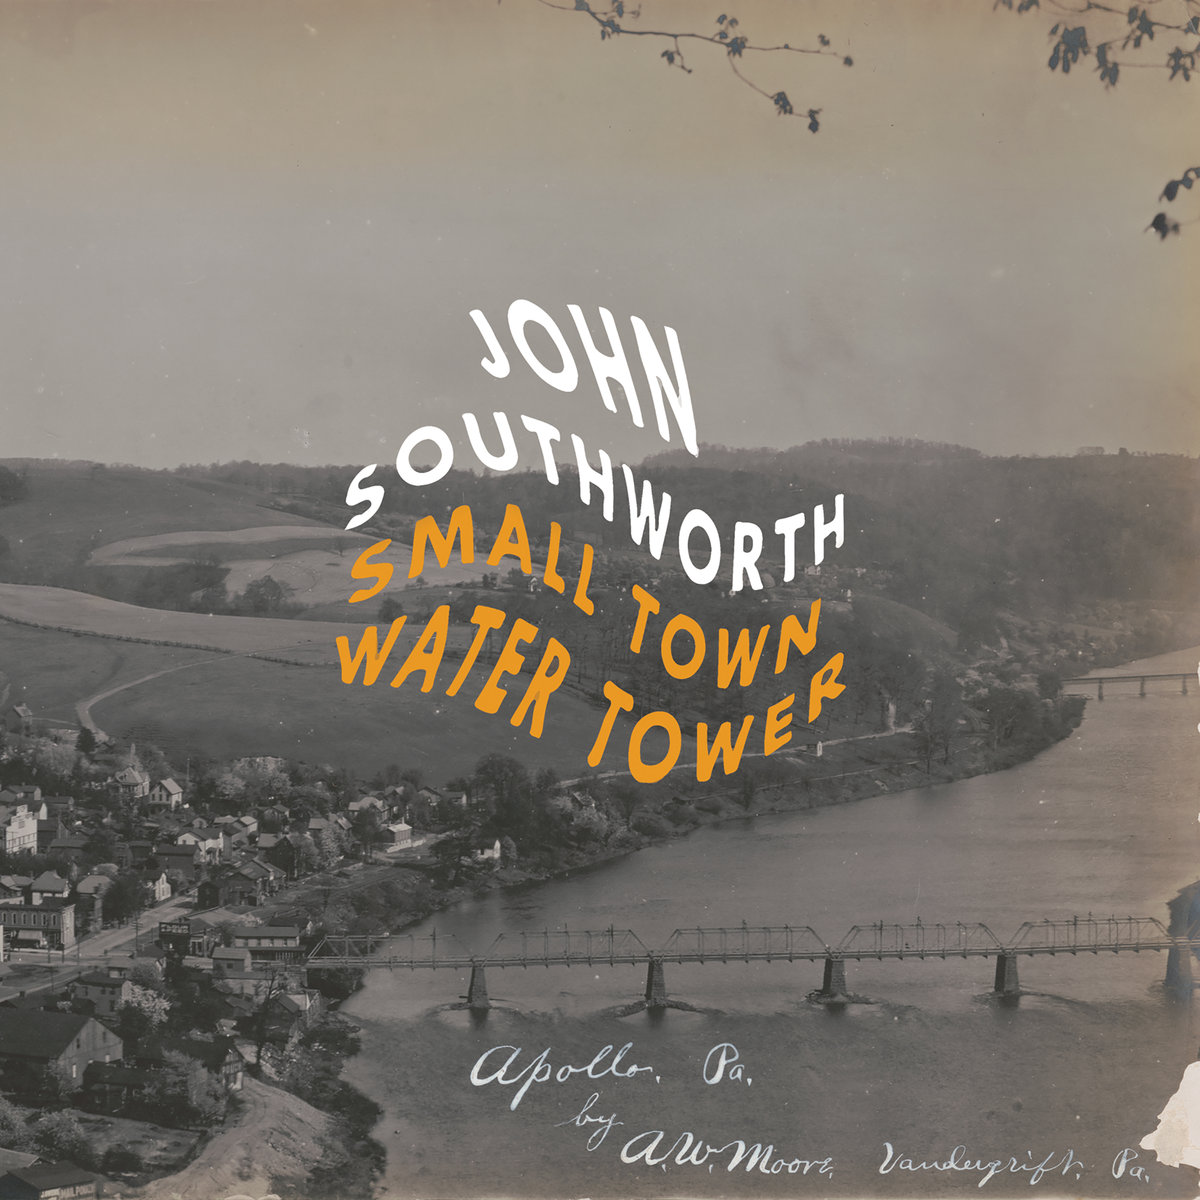 John Southworth, Small Town Water Tower